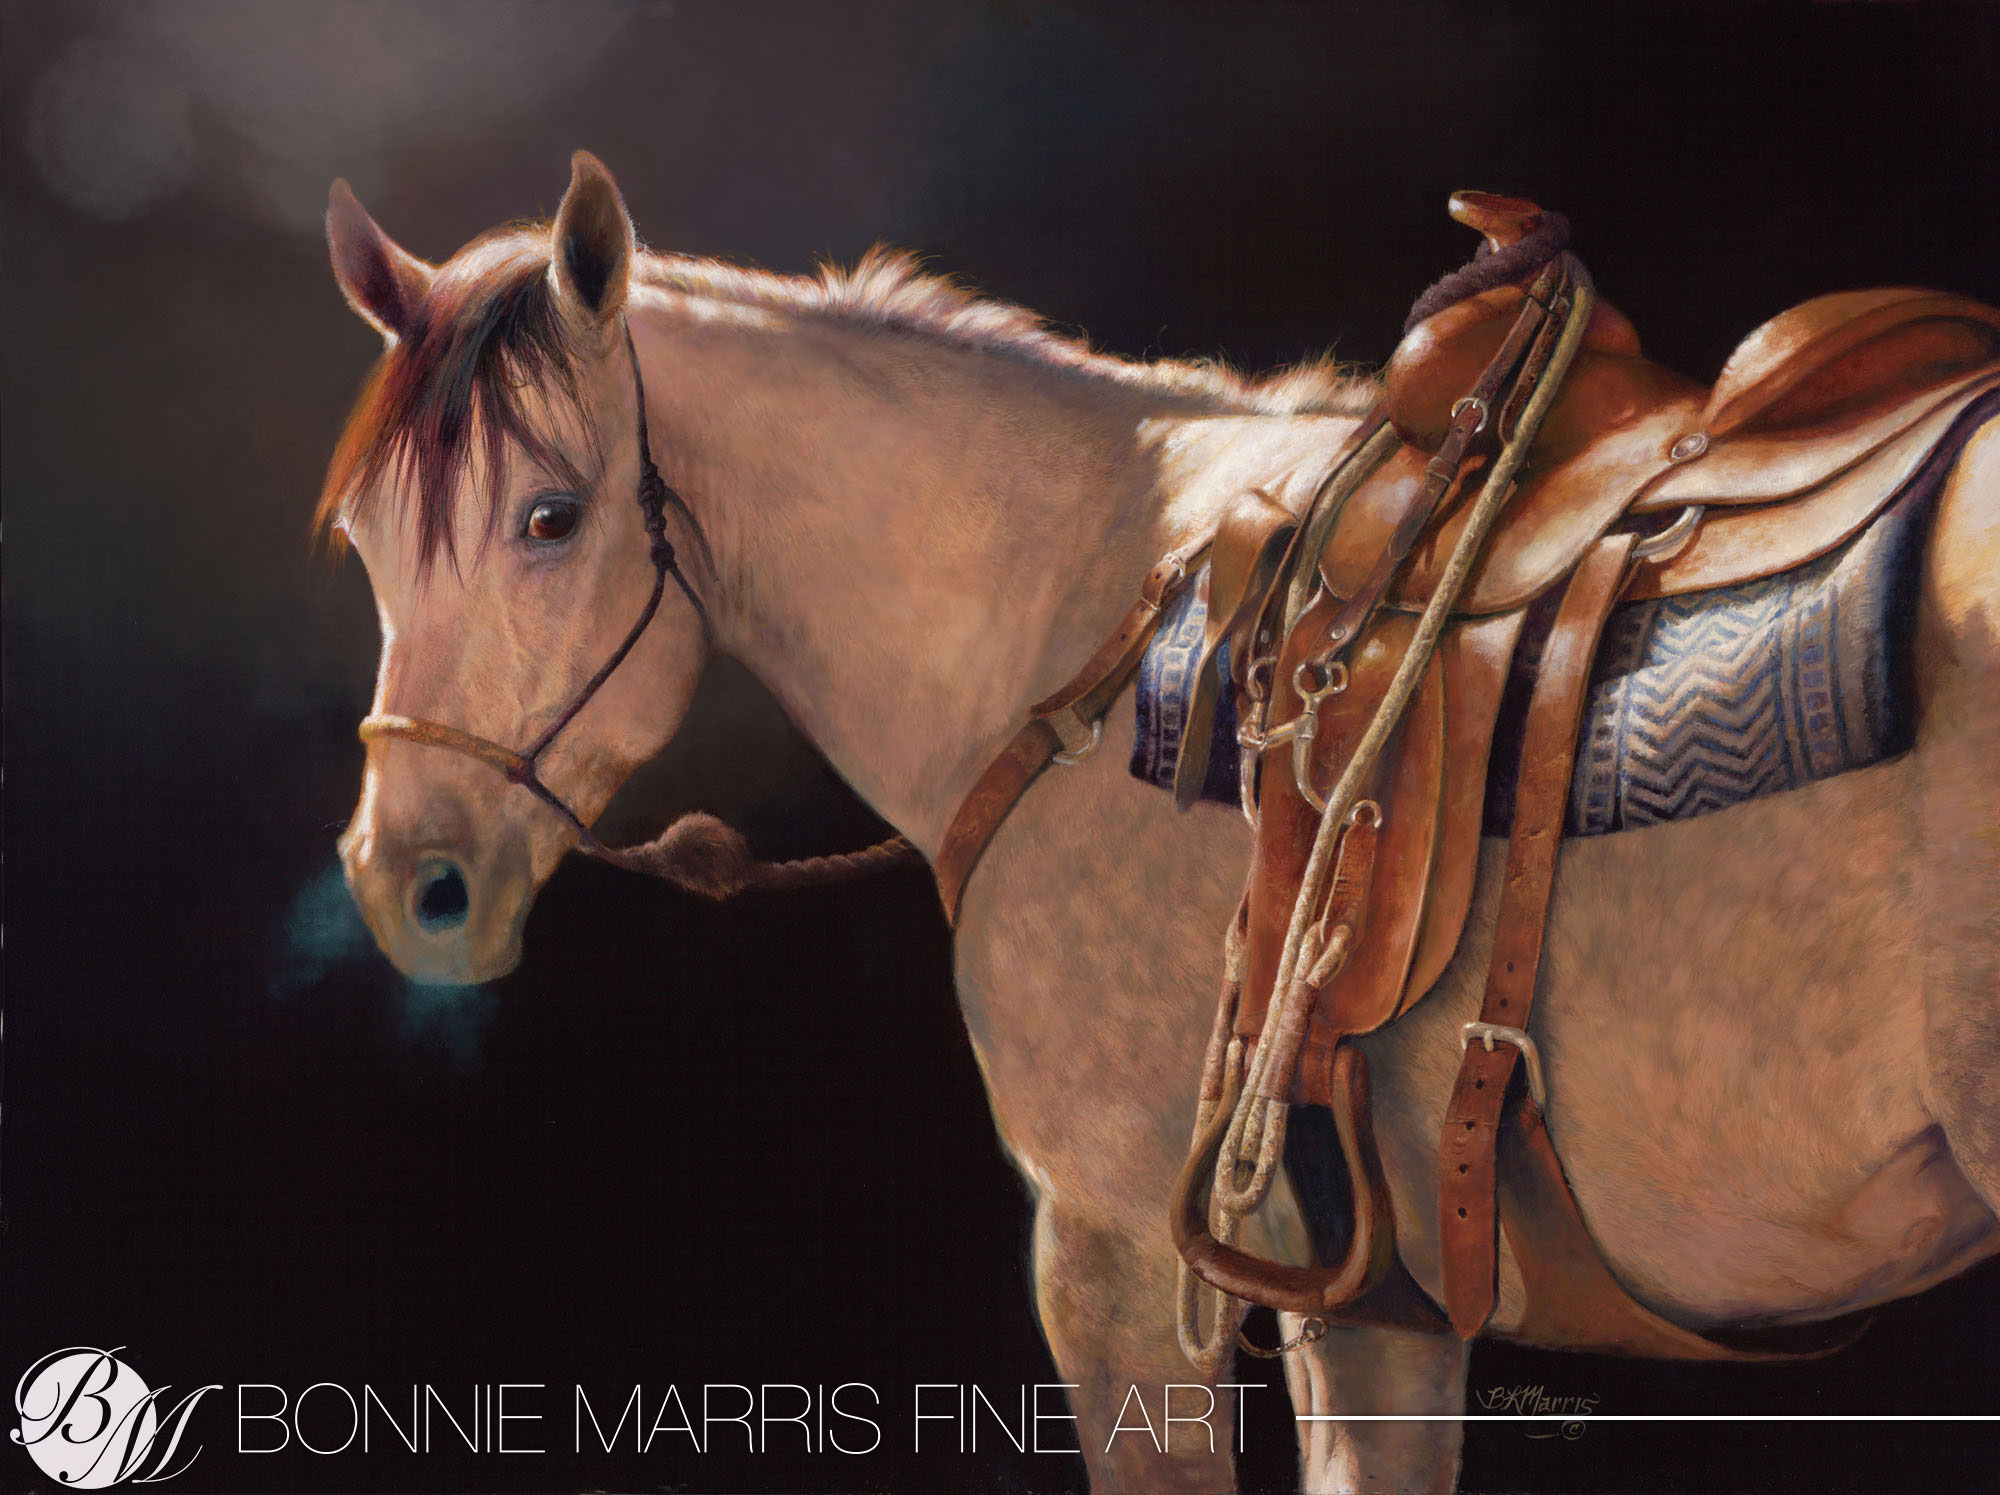 """Jacks High Point Night   """"You never know when a spark which leads to a painting will first appear,"""" Bonnie Marris says. """"I was at an event in California when I saw this amazing horse waiting under the lights on the sidelines. This spectacular horse had a mesmerizing look that I couldn't take my eyes off, as if he had so much to say. As he swept the awards that night, I learned his name was Jack.  """"There's a kind of magic in making a connection with your subject one-on-one rather than as part of a pack or herd. As an artist, when I see this spark in any animal, I can't wait to get back into the studio and capture it. The challenge and real reward is passing that connective spark to the collector."""""""